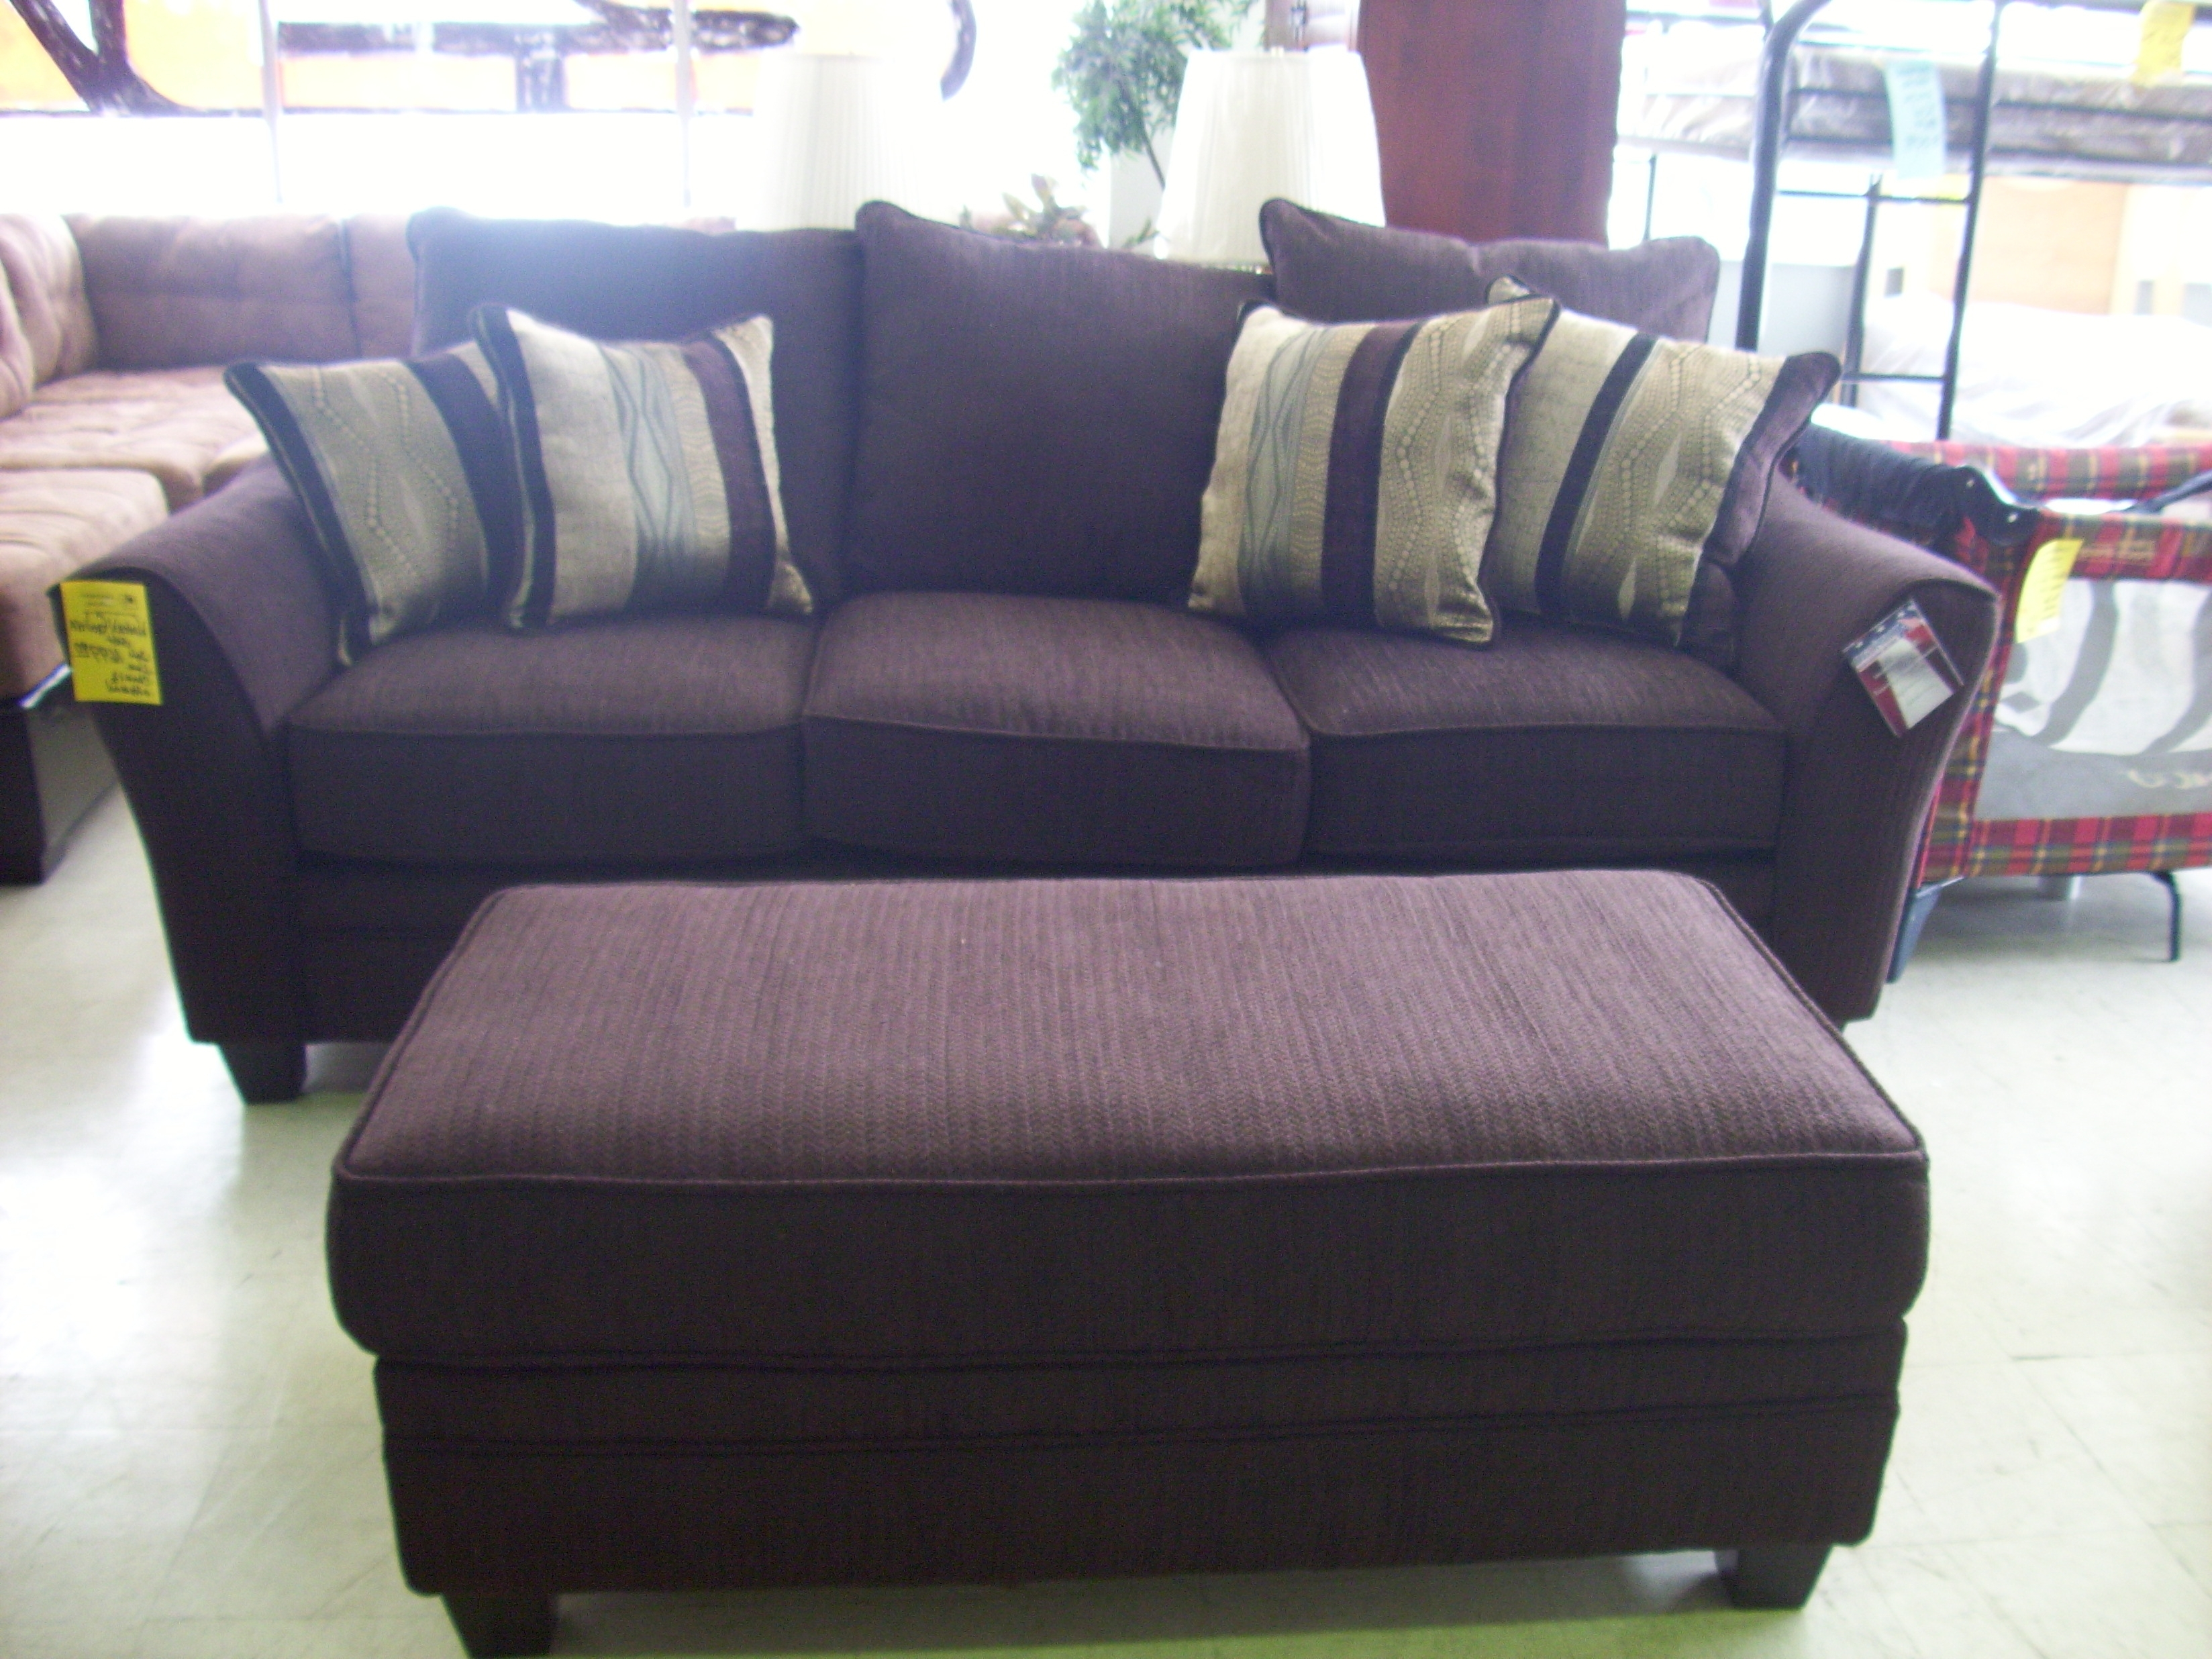 Oversized Sofa Chairs With Regard To Current Oversized Sofa – Helpformycredit (View 11 of 15)